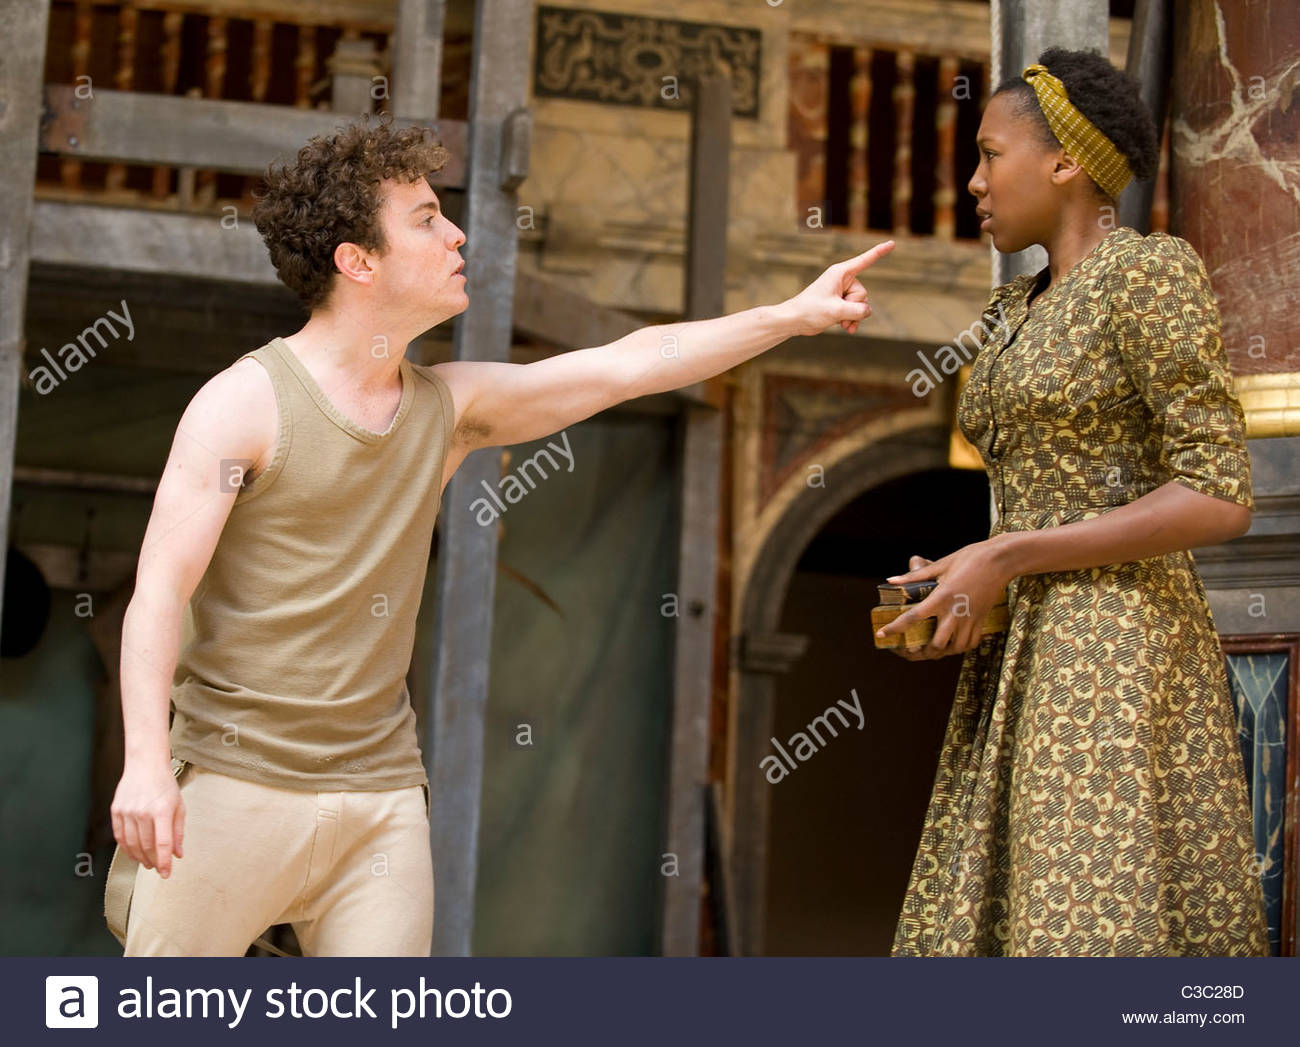 Hamlet by William Shakespeare.A Shakeapeare's Globe Touring Production directed by Dominic Dromgoole. Stock Photo